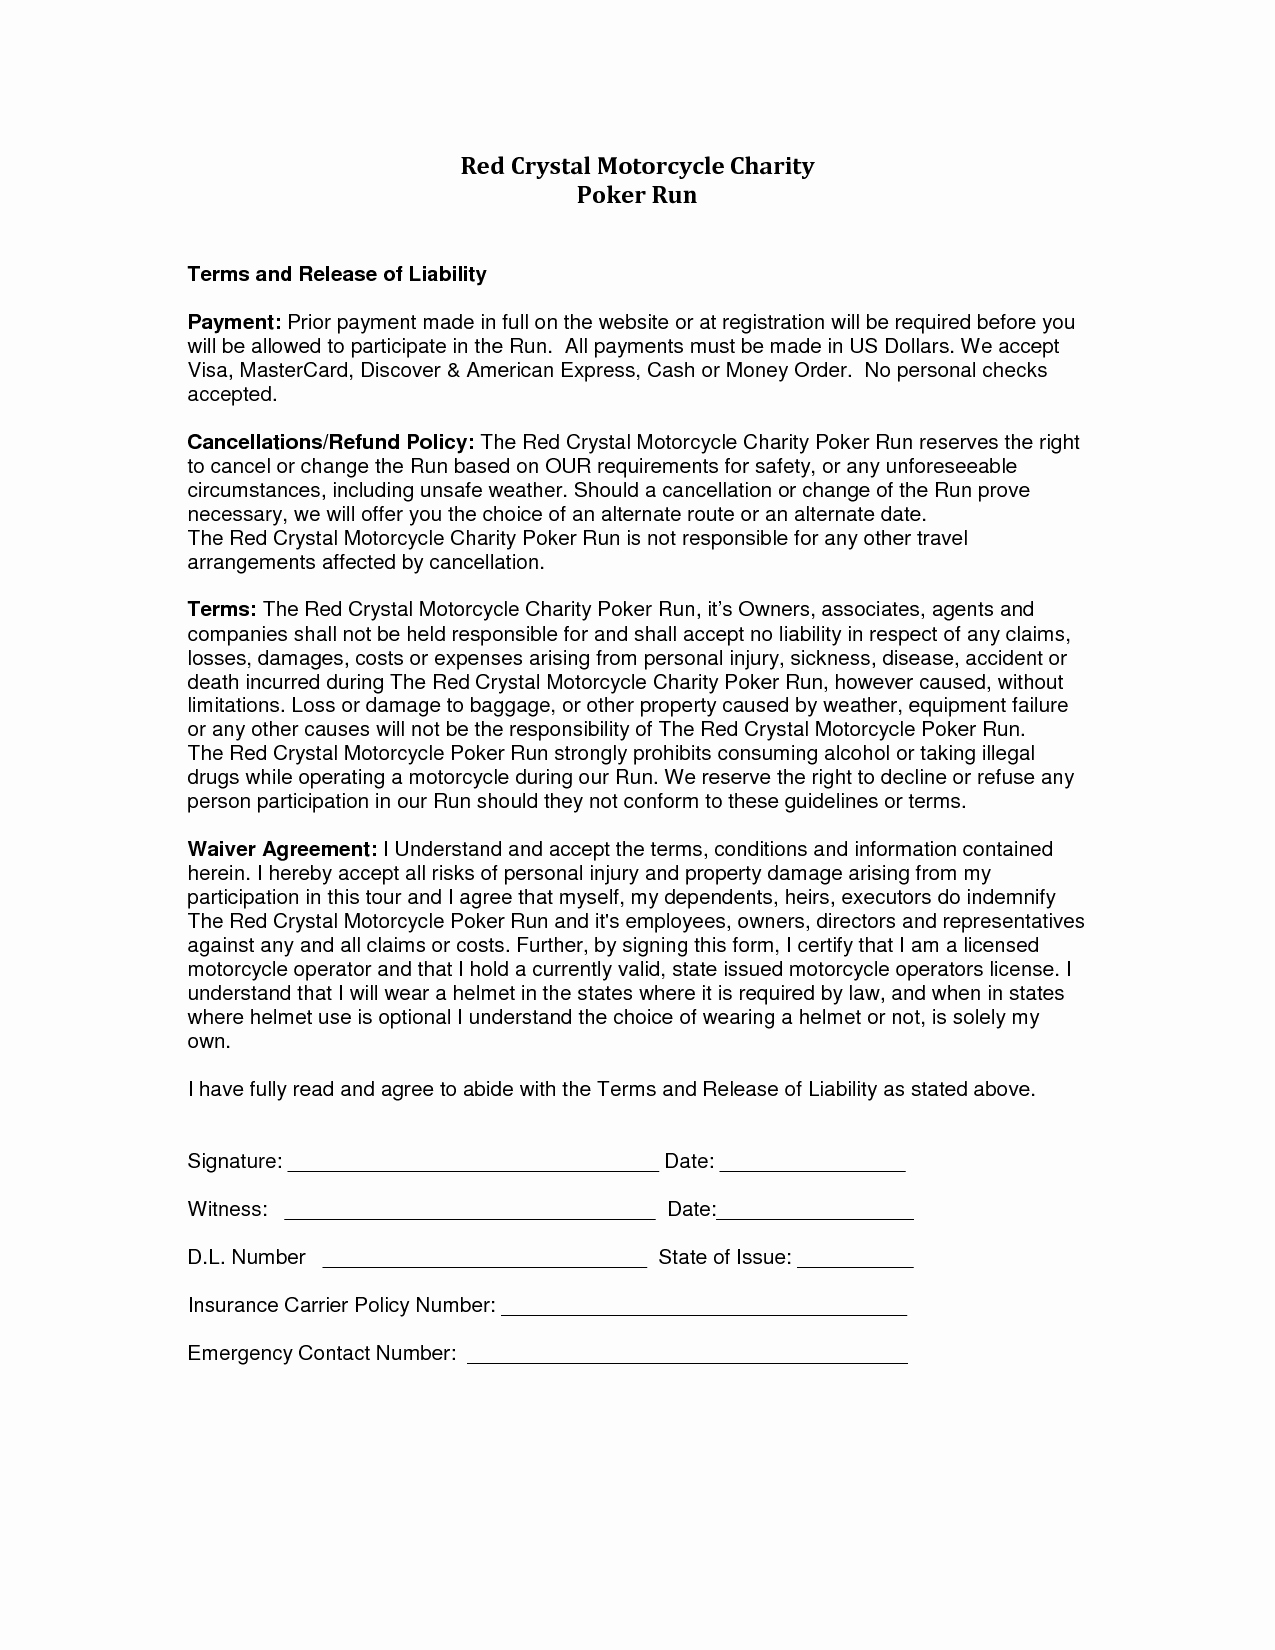 Release Of Liability Template Free Unique Liability Release form Template Free Printable Documents